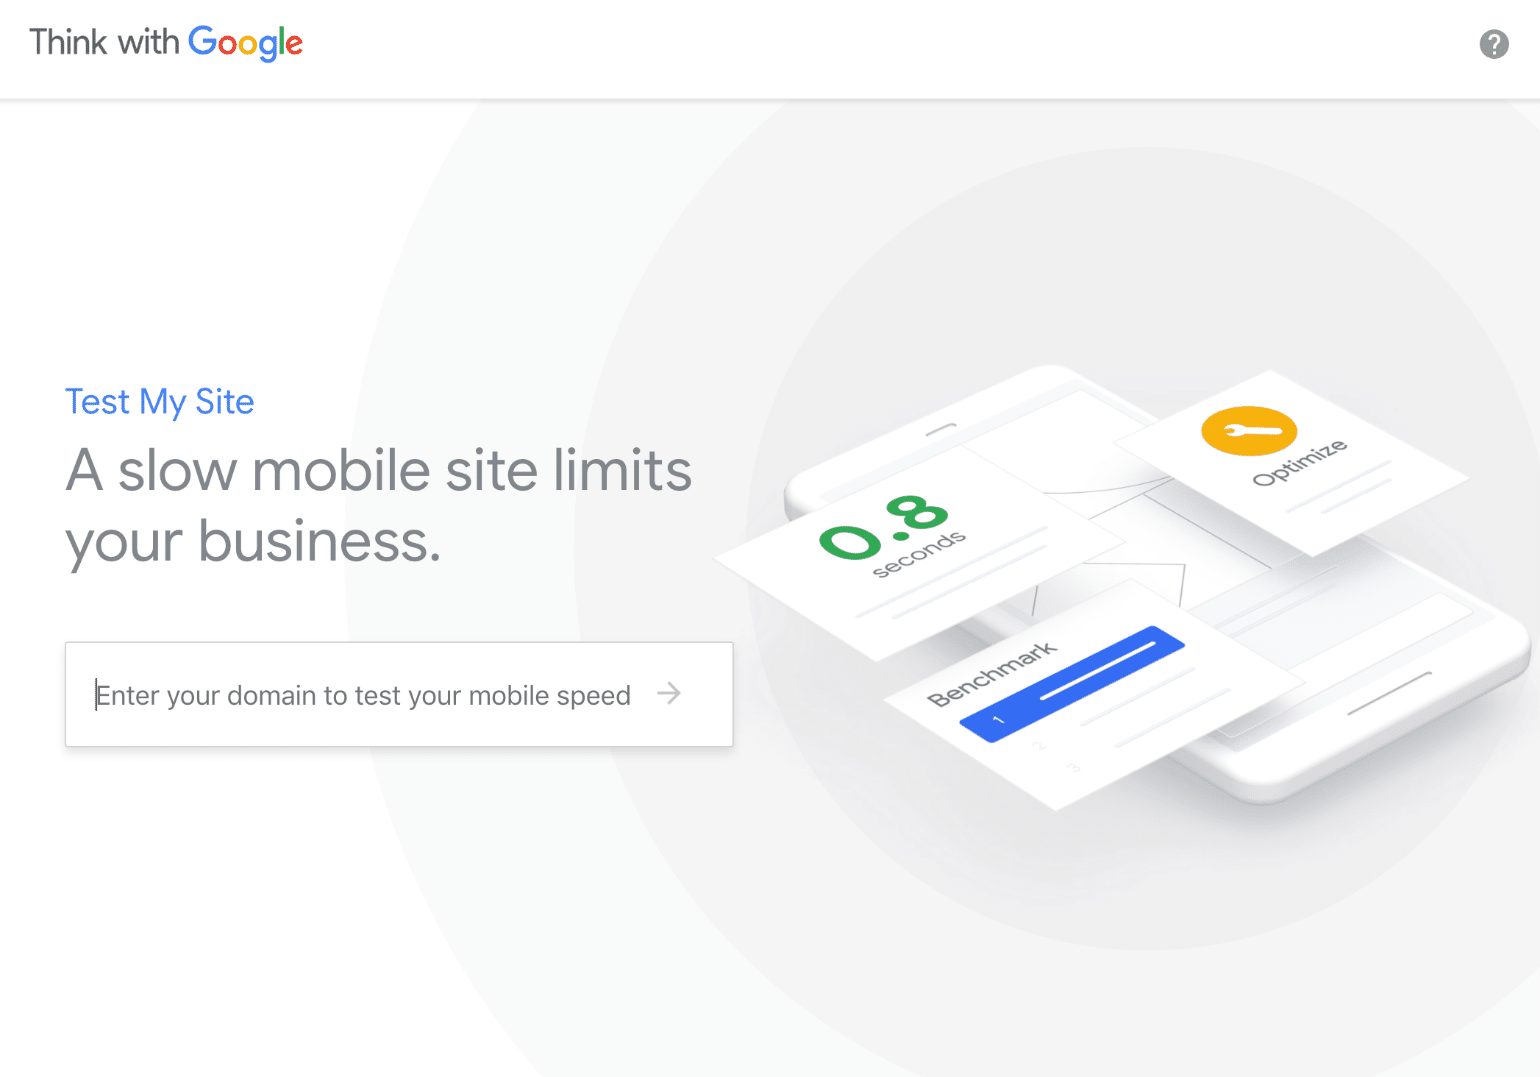 Google Mobile website snelheidstest hulpmiddel